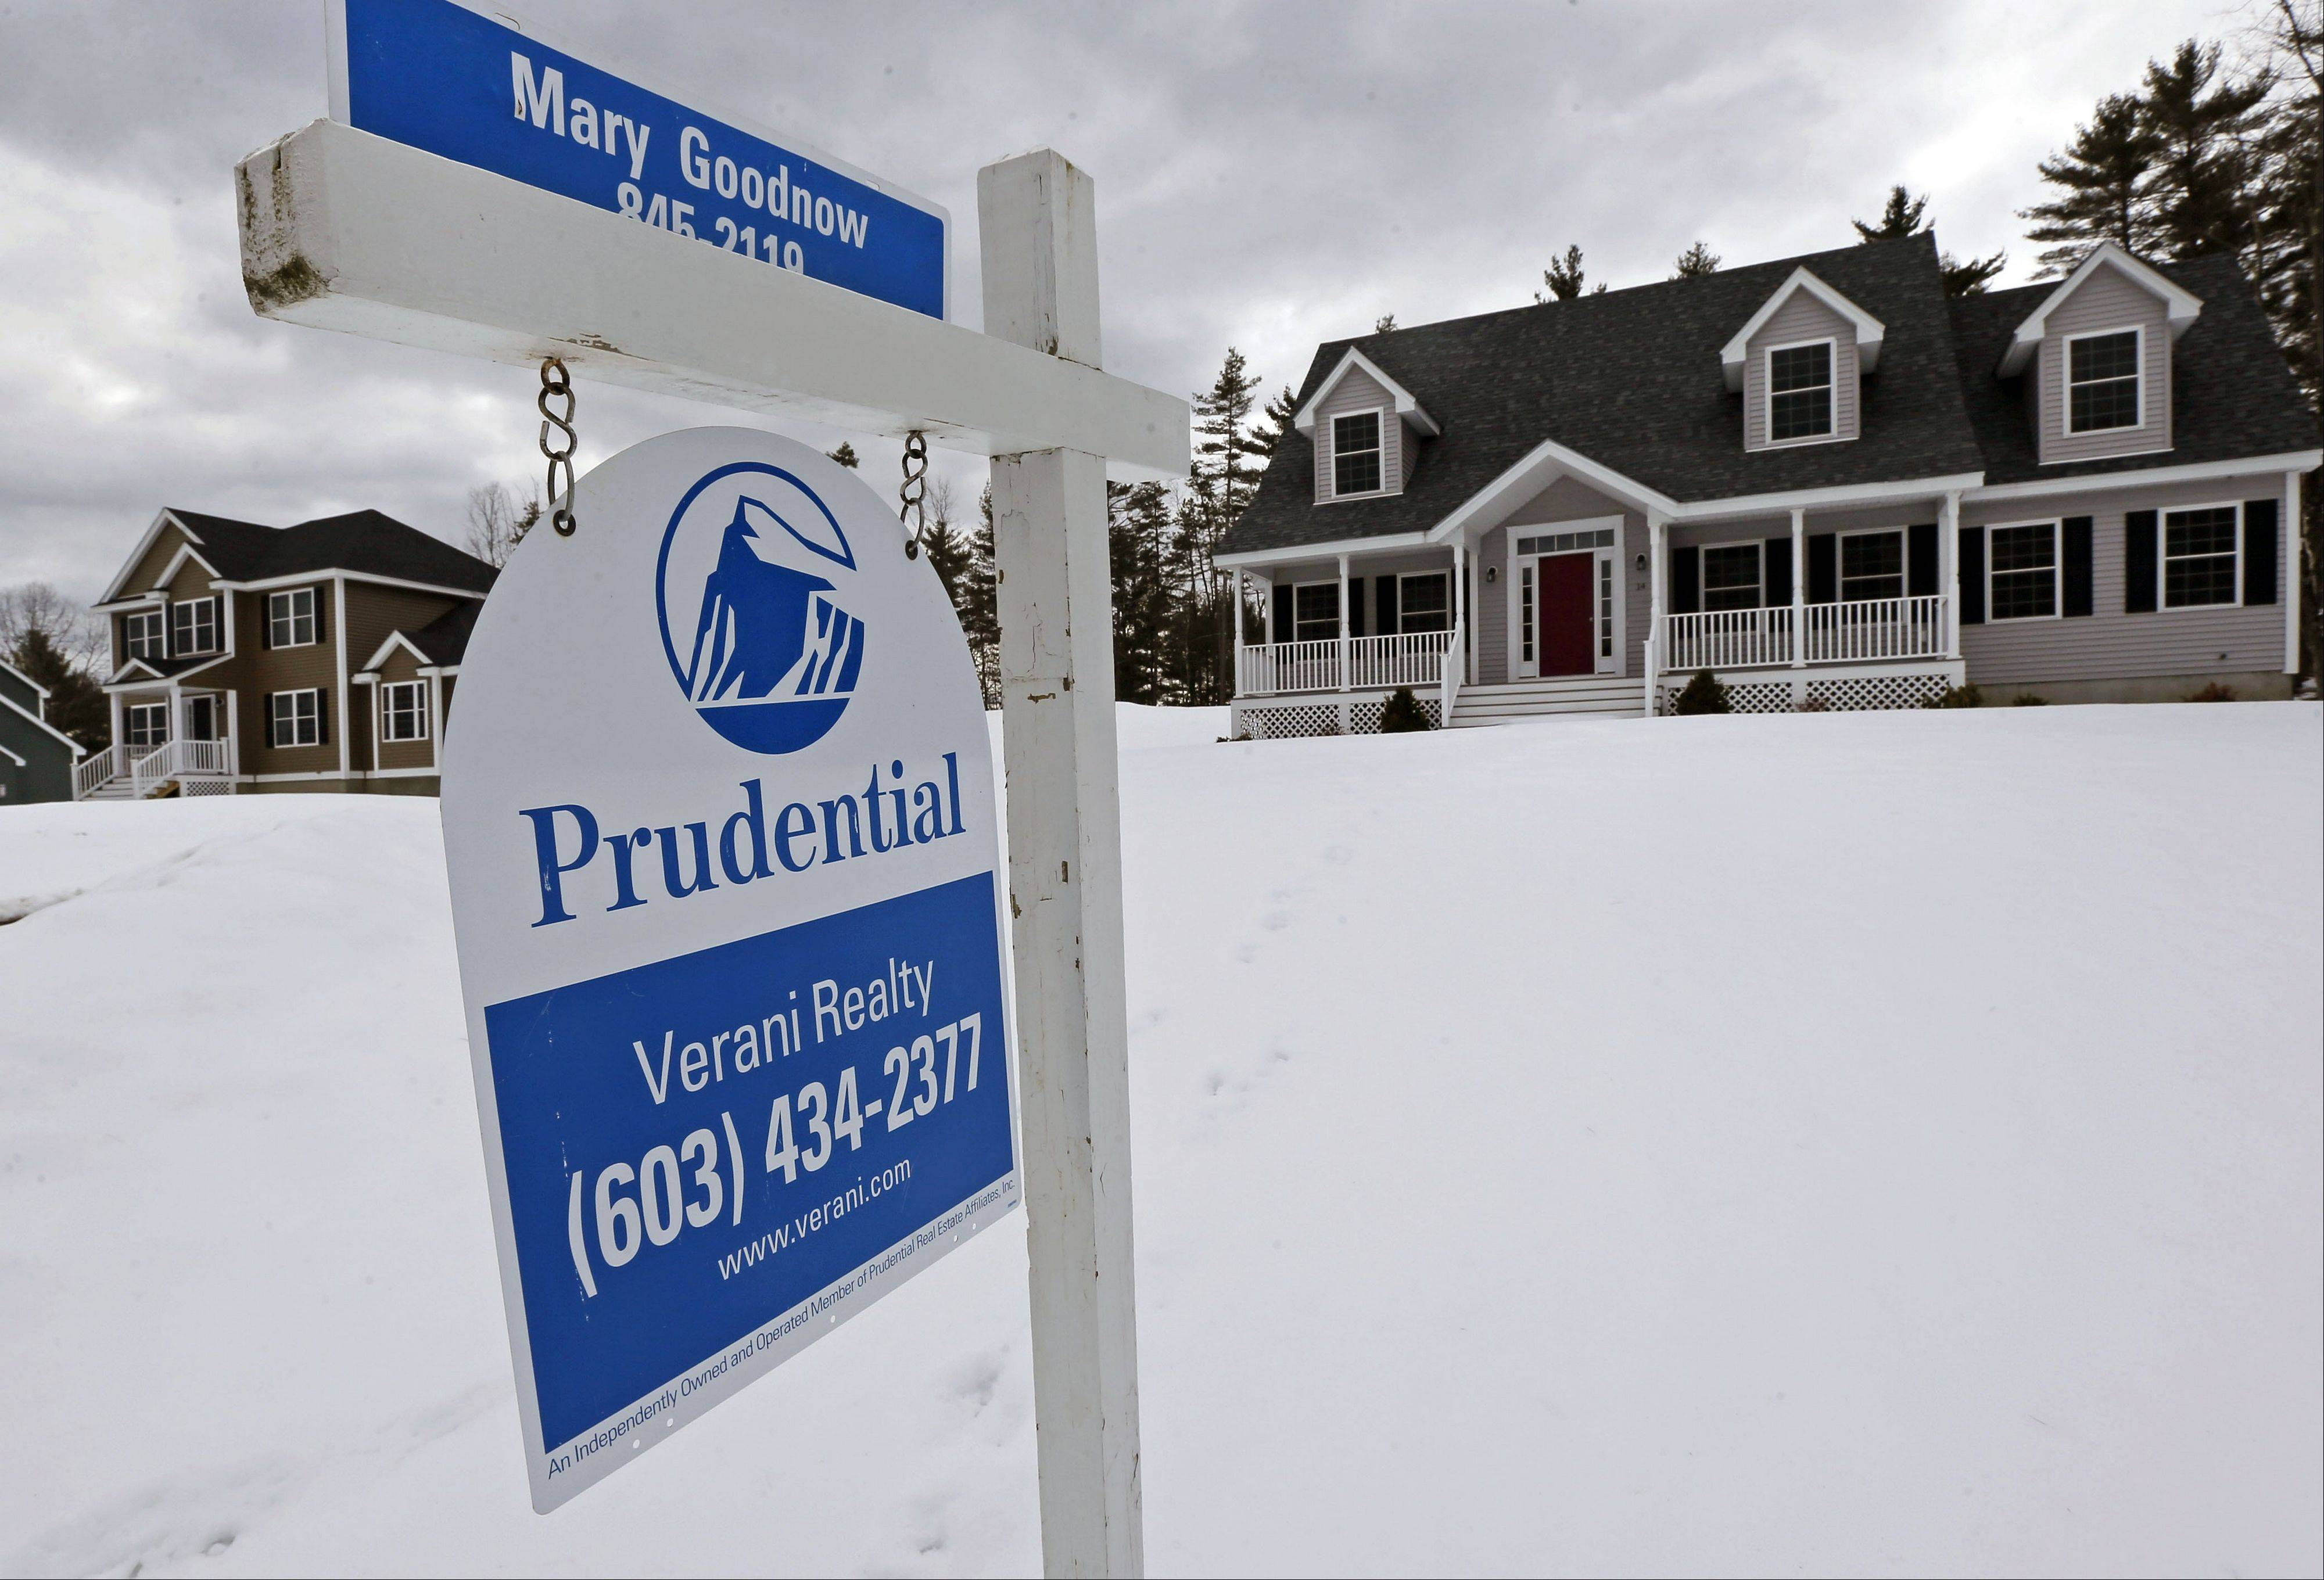 U.S. home prices rose 9.3 percent in February compared with a year ago, the most in nearly seven years. The gains were driven by a growing number of buyers who bid on a limited supply of homes. The Standard & Poor�s/Case-Shiller 20-city home price index increased from an 8.1 percent year-over-year gain in January. And annual prices rose in February in all 20 cities for the second month in a row.